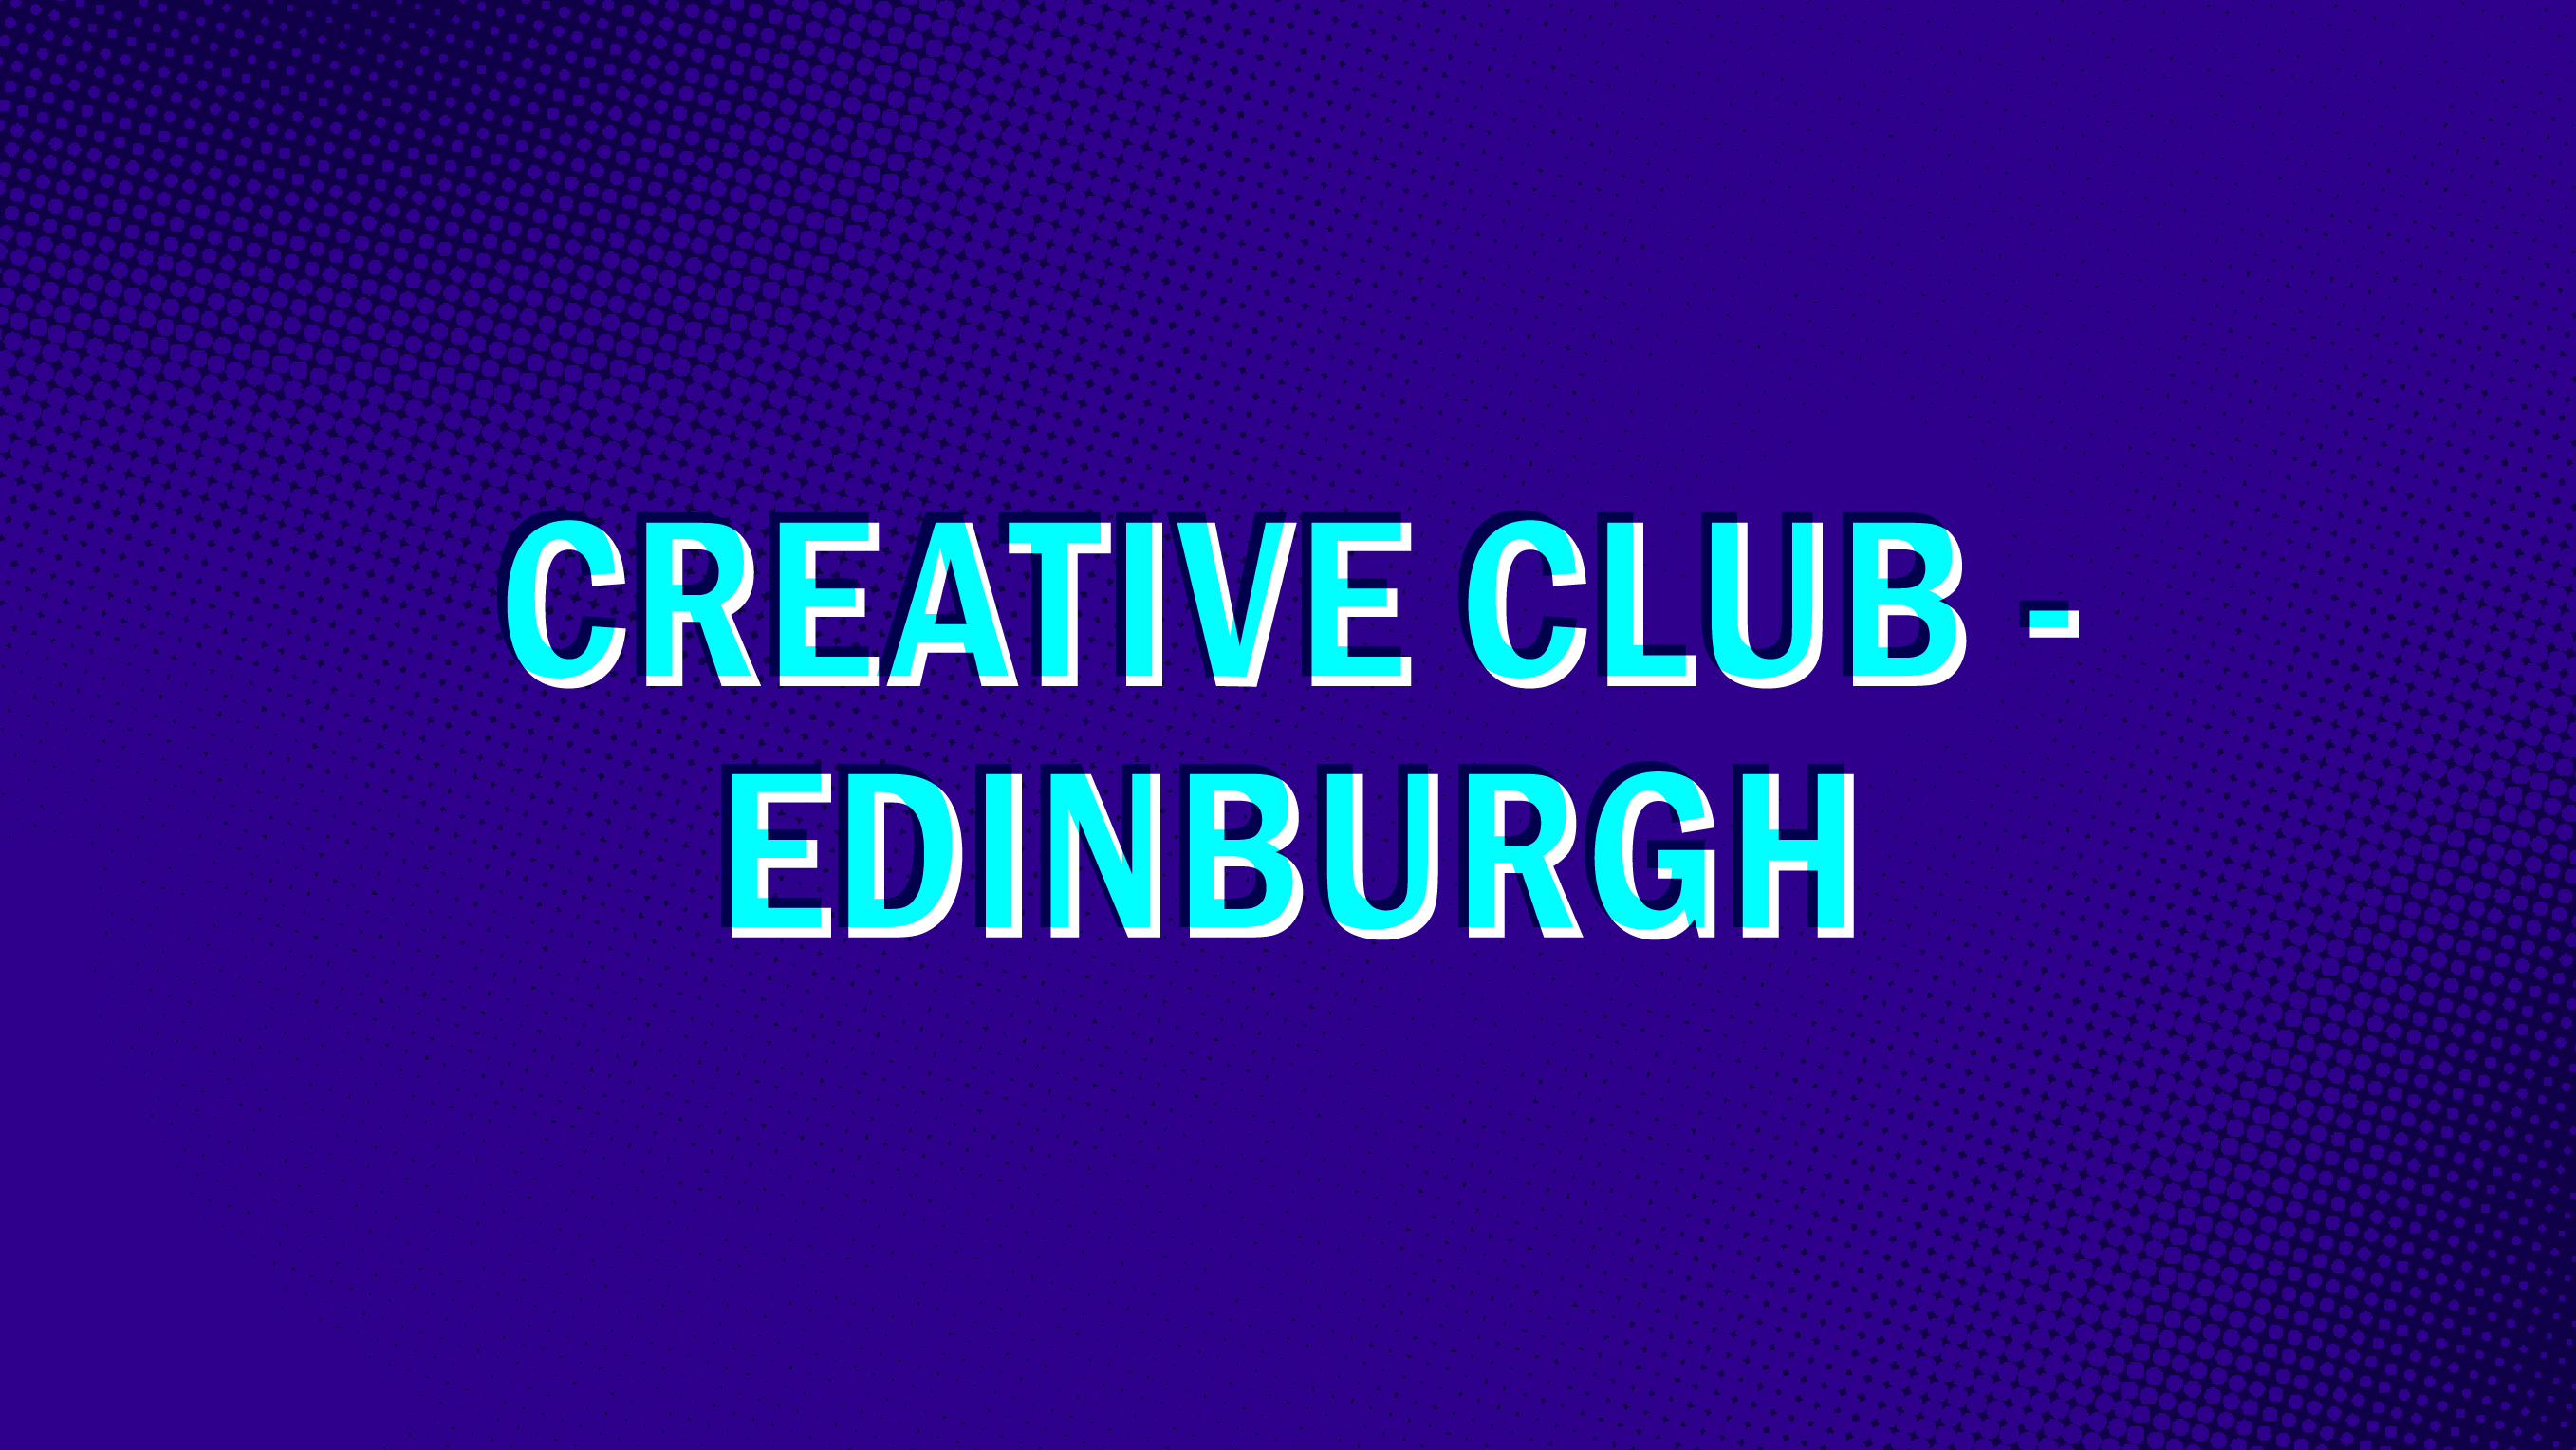 Creative club - Edinburgh web image.png